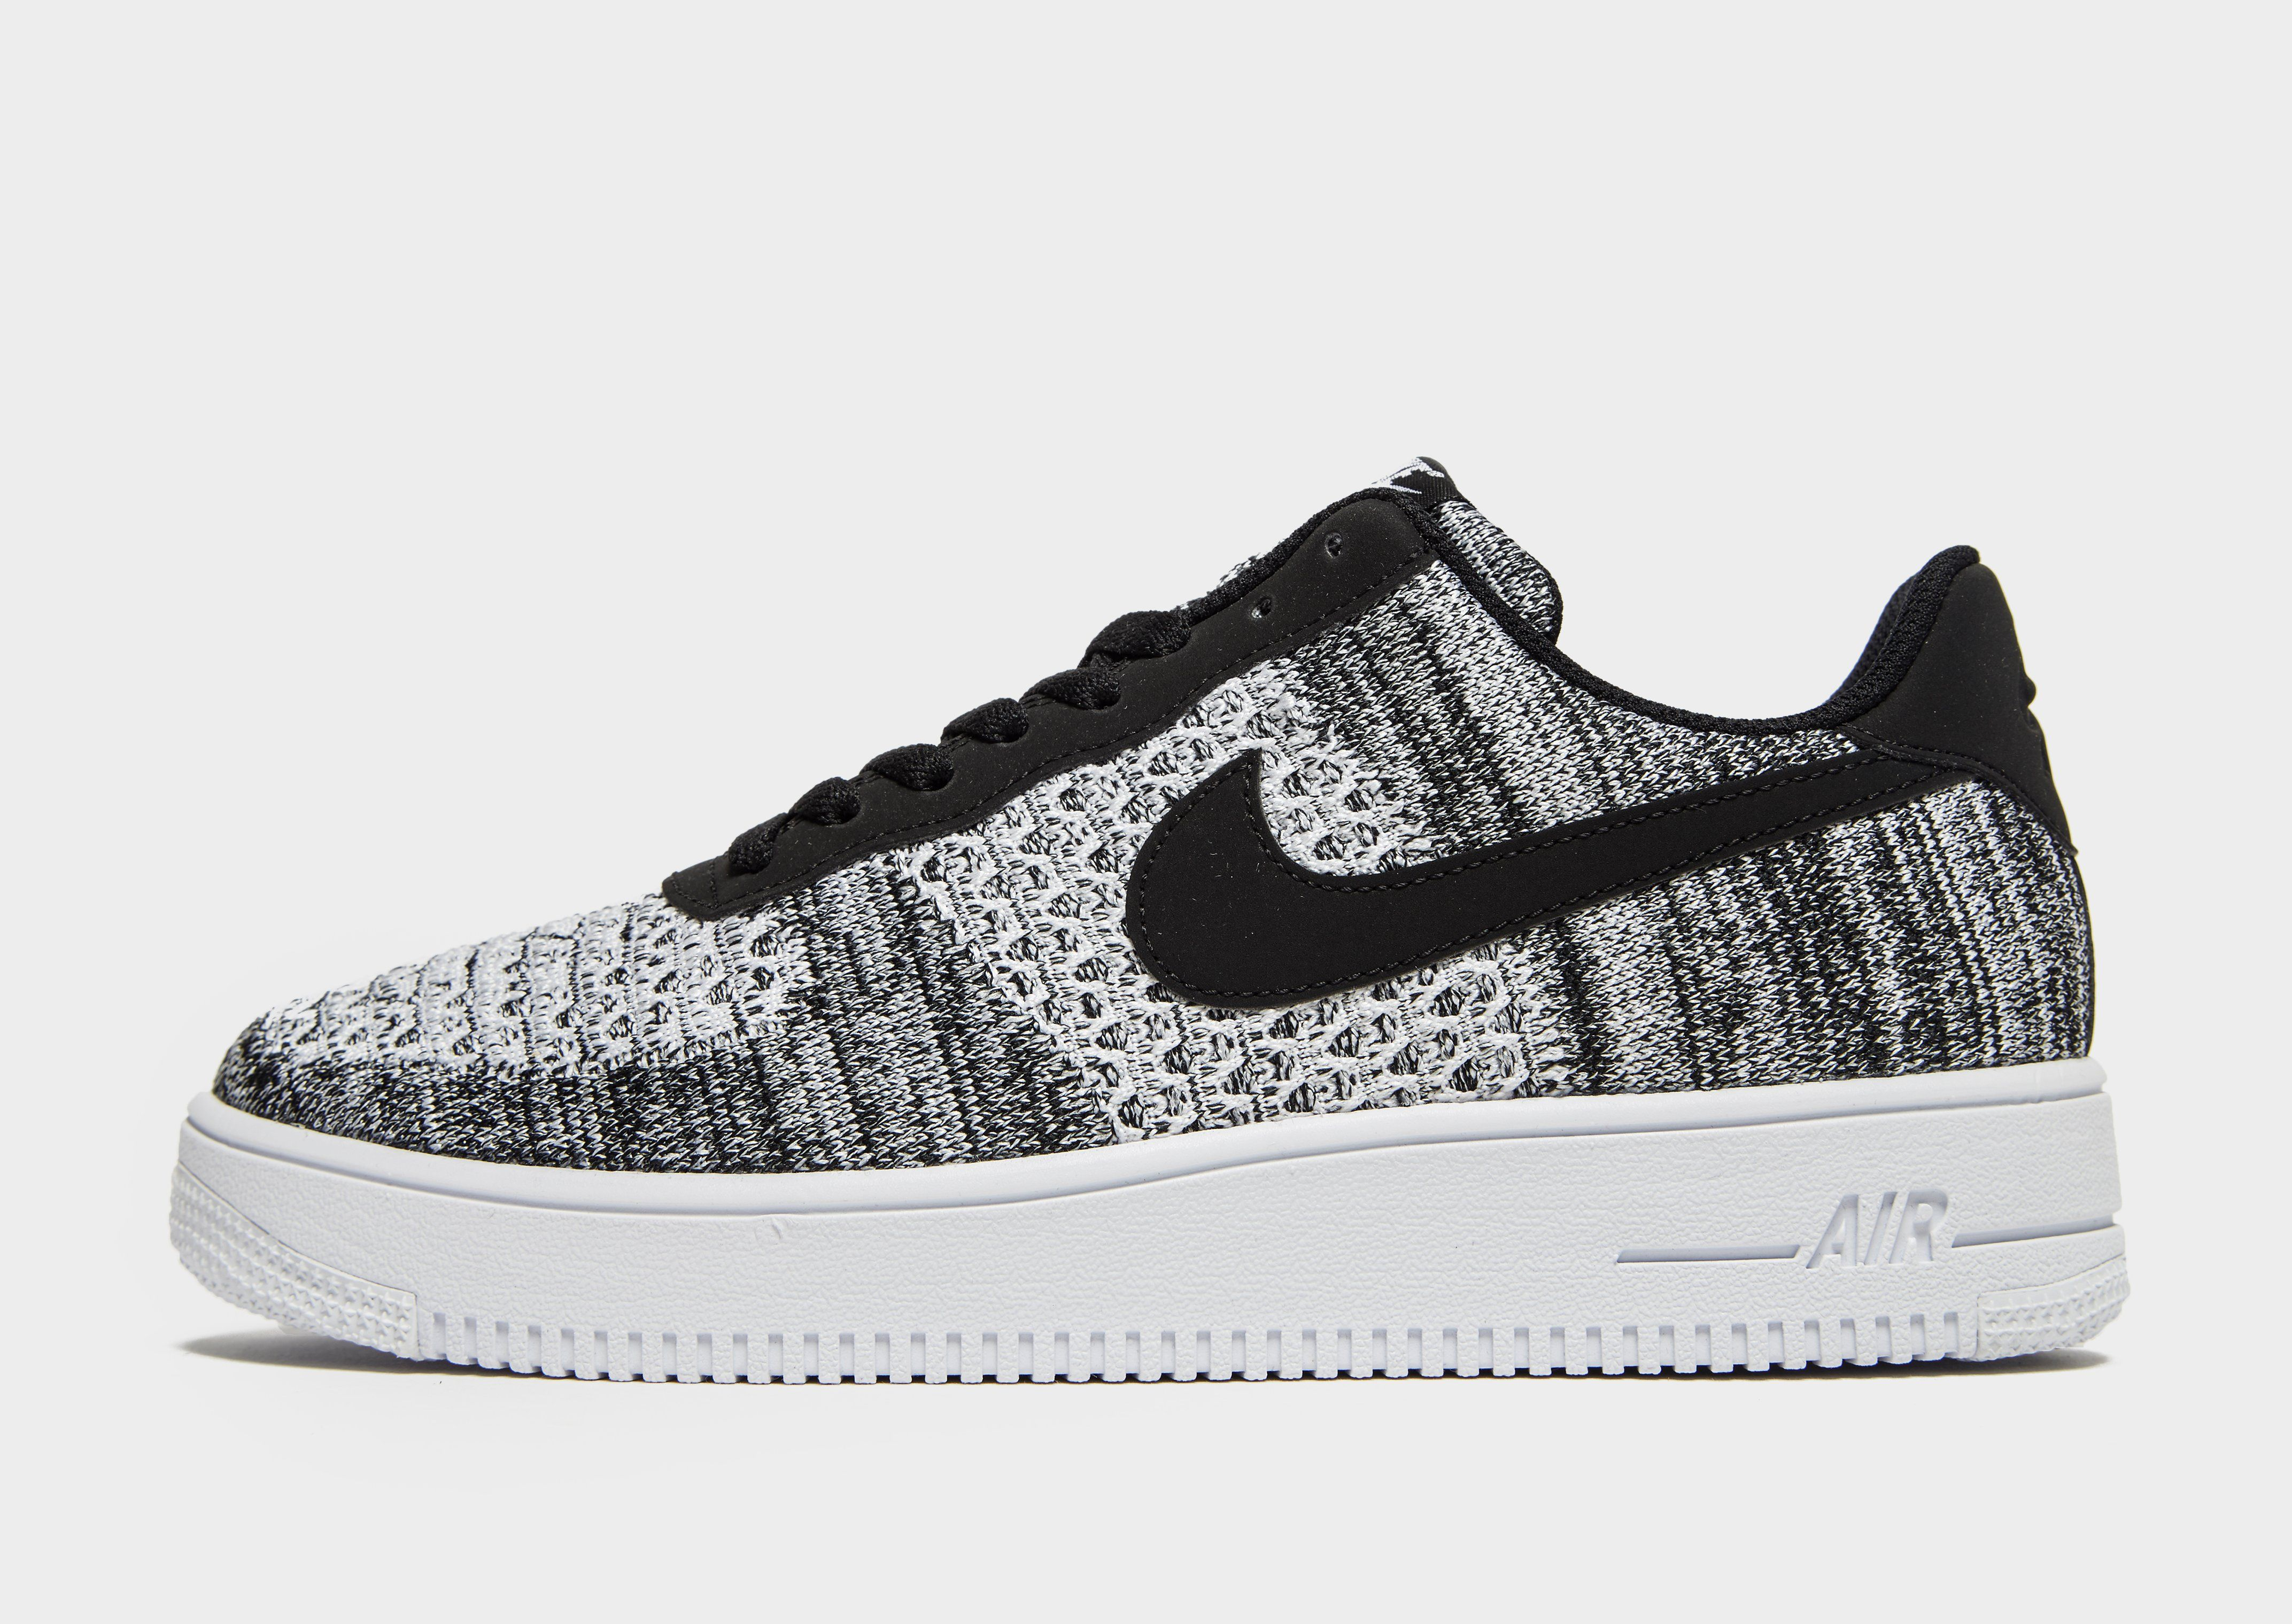 hot sale good looking top quality Nike Air Force 1 Flyknit 2.0 | JD Sports Ireland